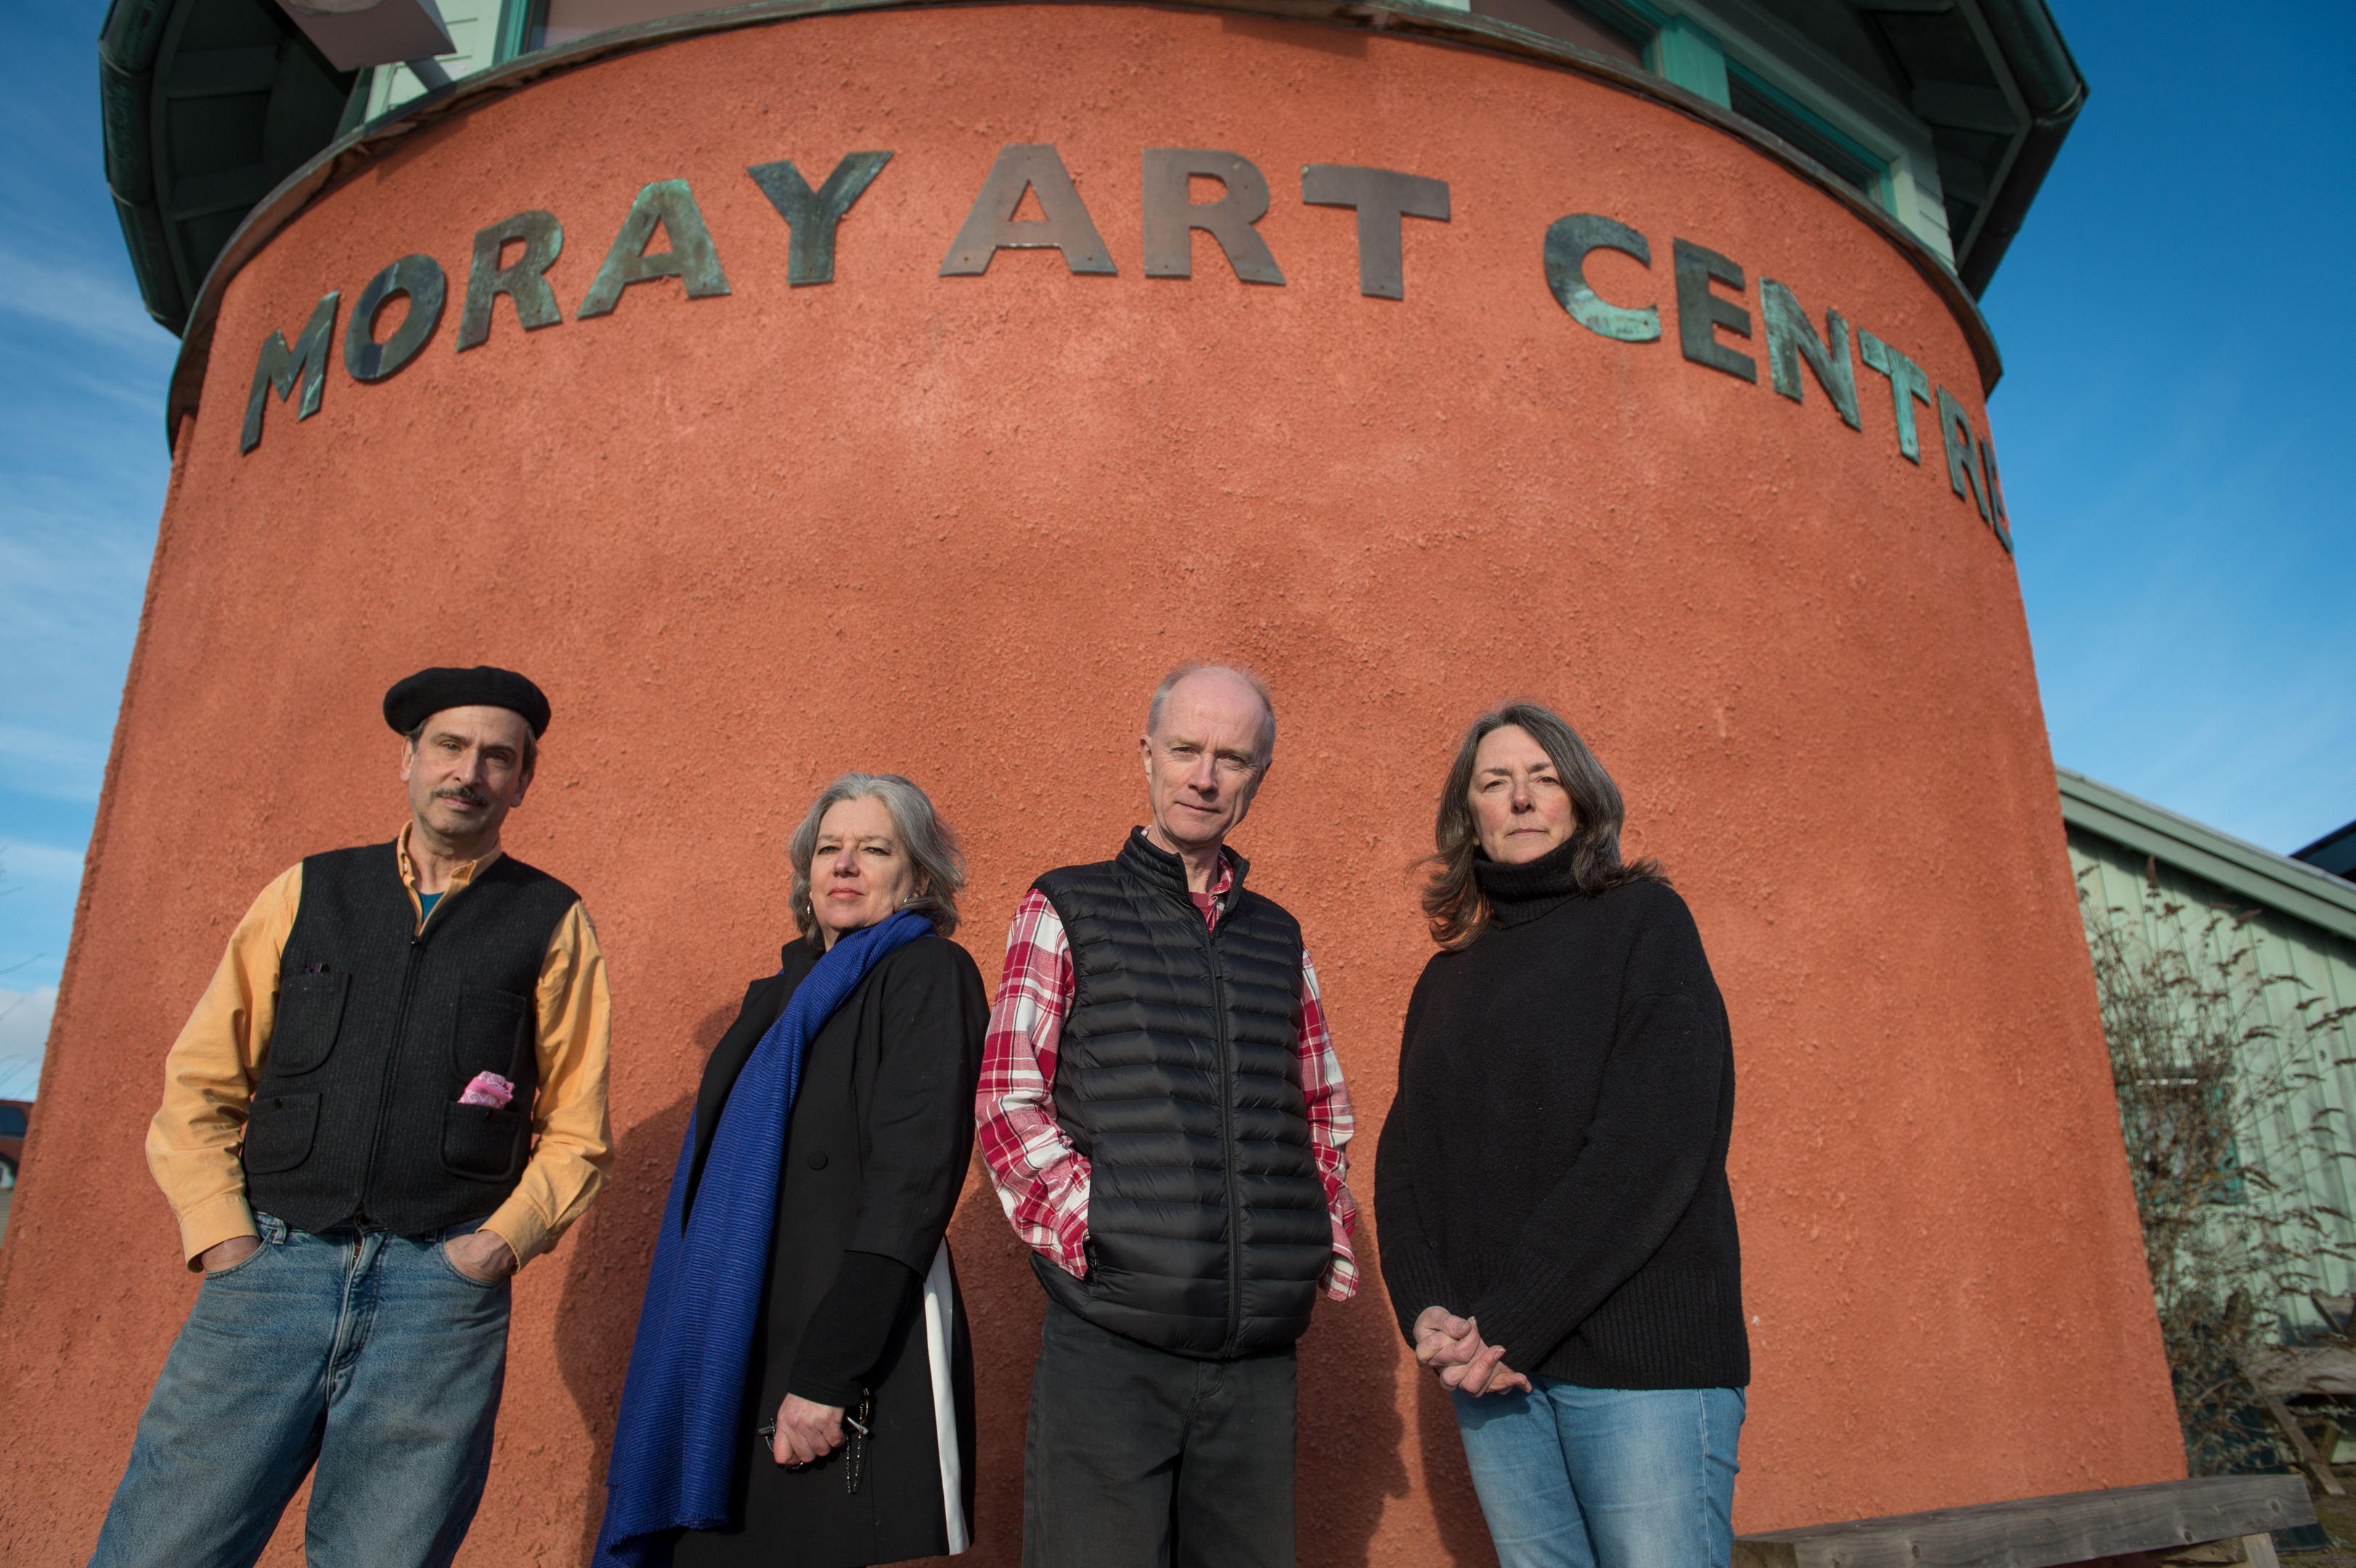 Left to right: Artist, Tutor & Founder Randy Klinger, artist, tutor and trustee Celia Forestal Smith, Water colour artist Jonathon Wheeler, and artist, trustee and teacherJulia Law outside of the Moray Art Centre, Findhorn. Picture by Jason Hedges.